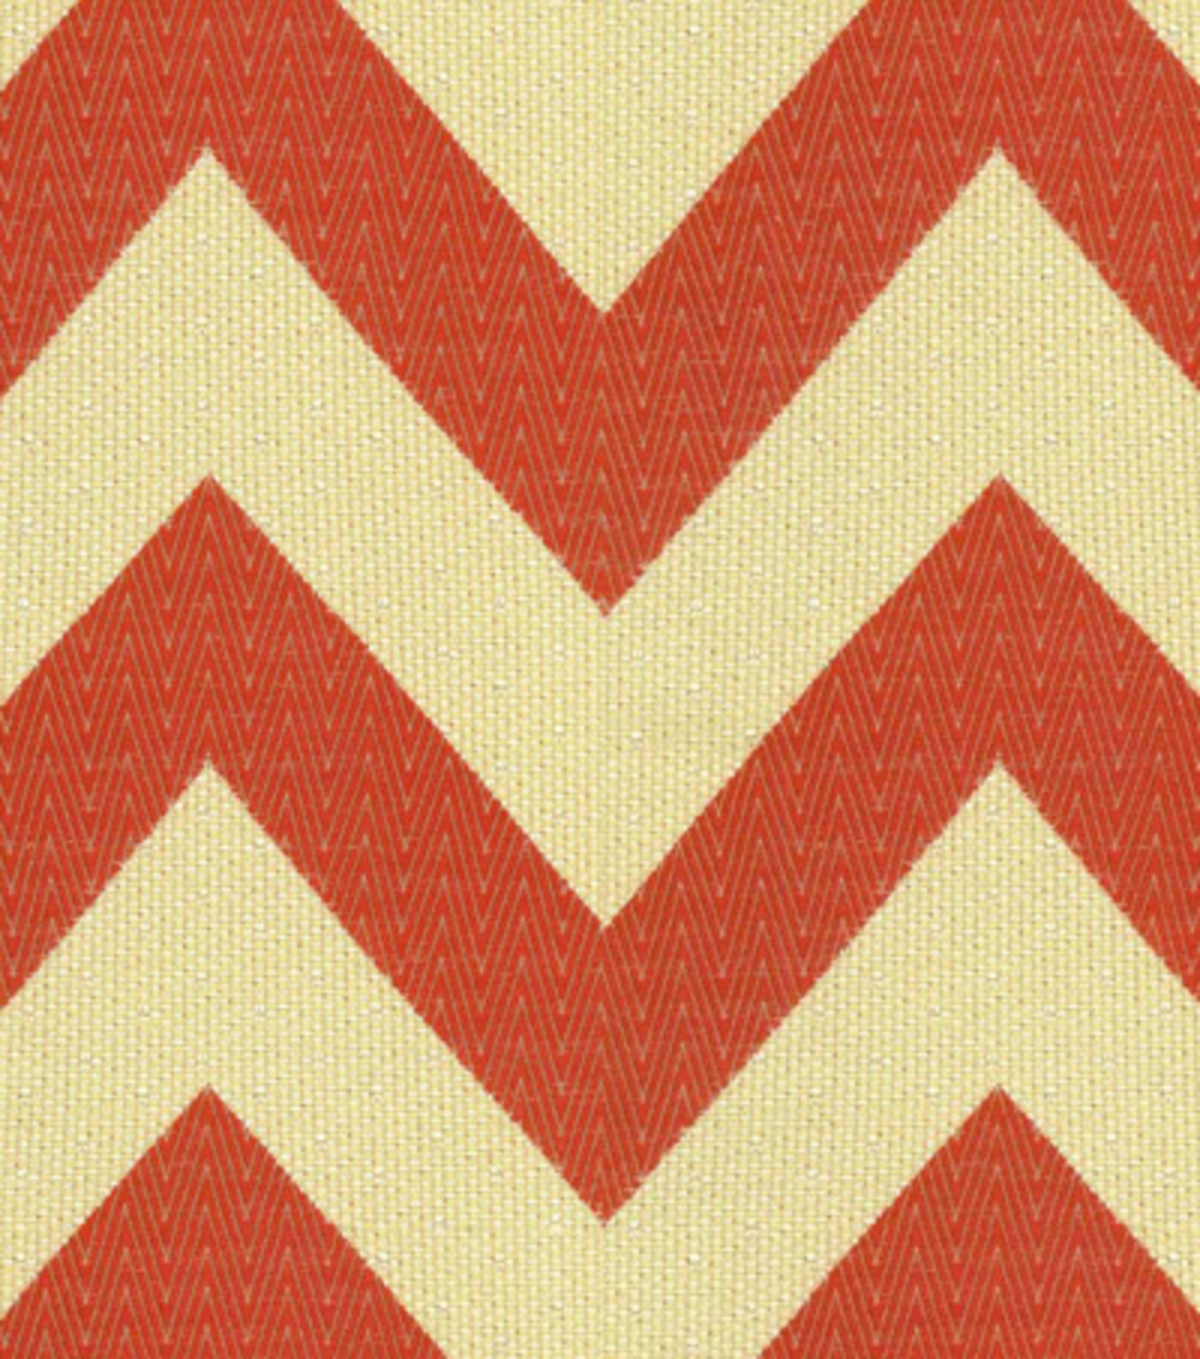 Home Decor 8\u0022x8\u0022 Fabric Swatch-HGTV HOME Chevron Chic Harvest